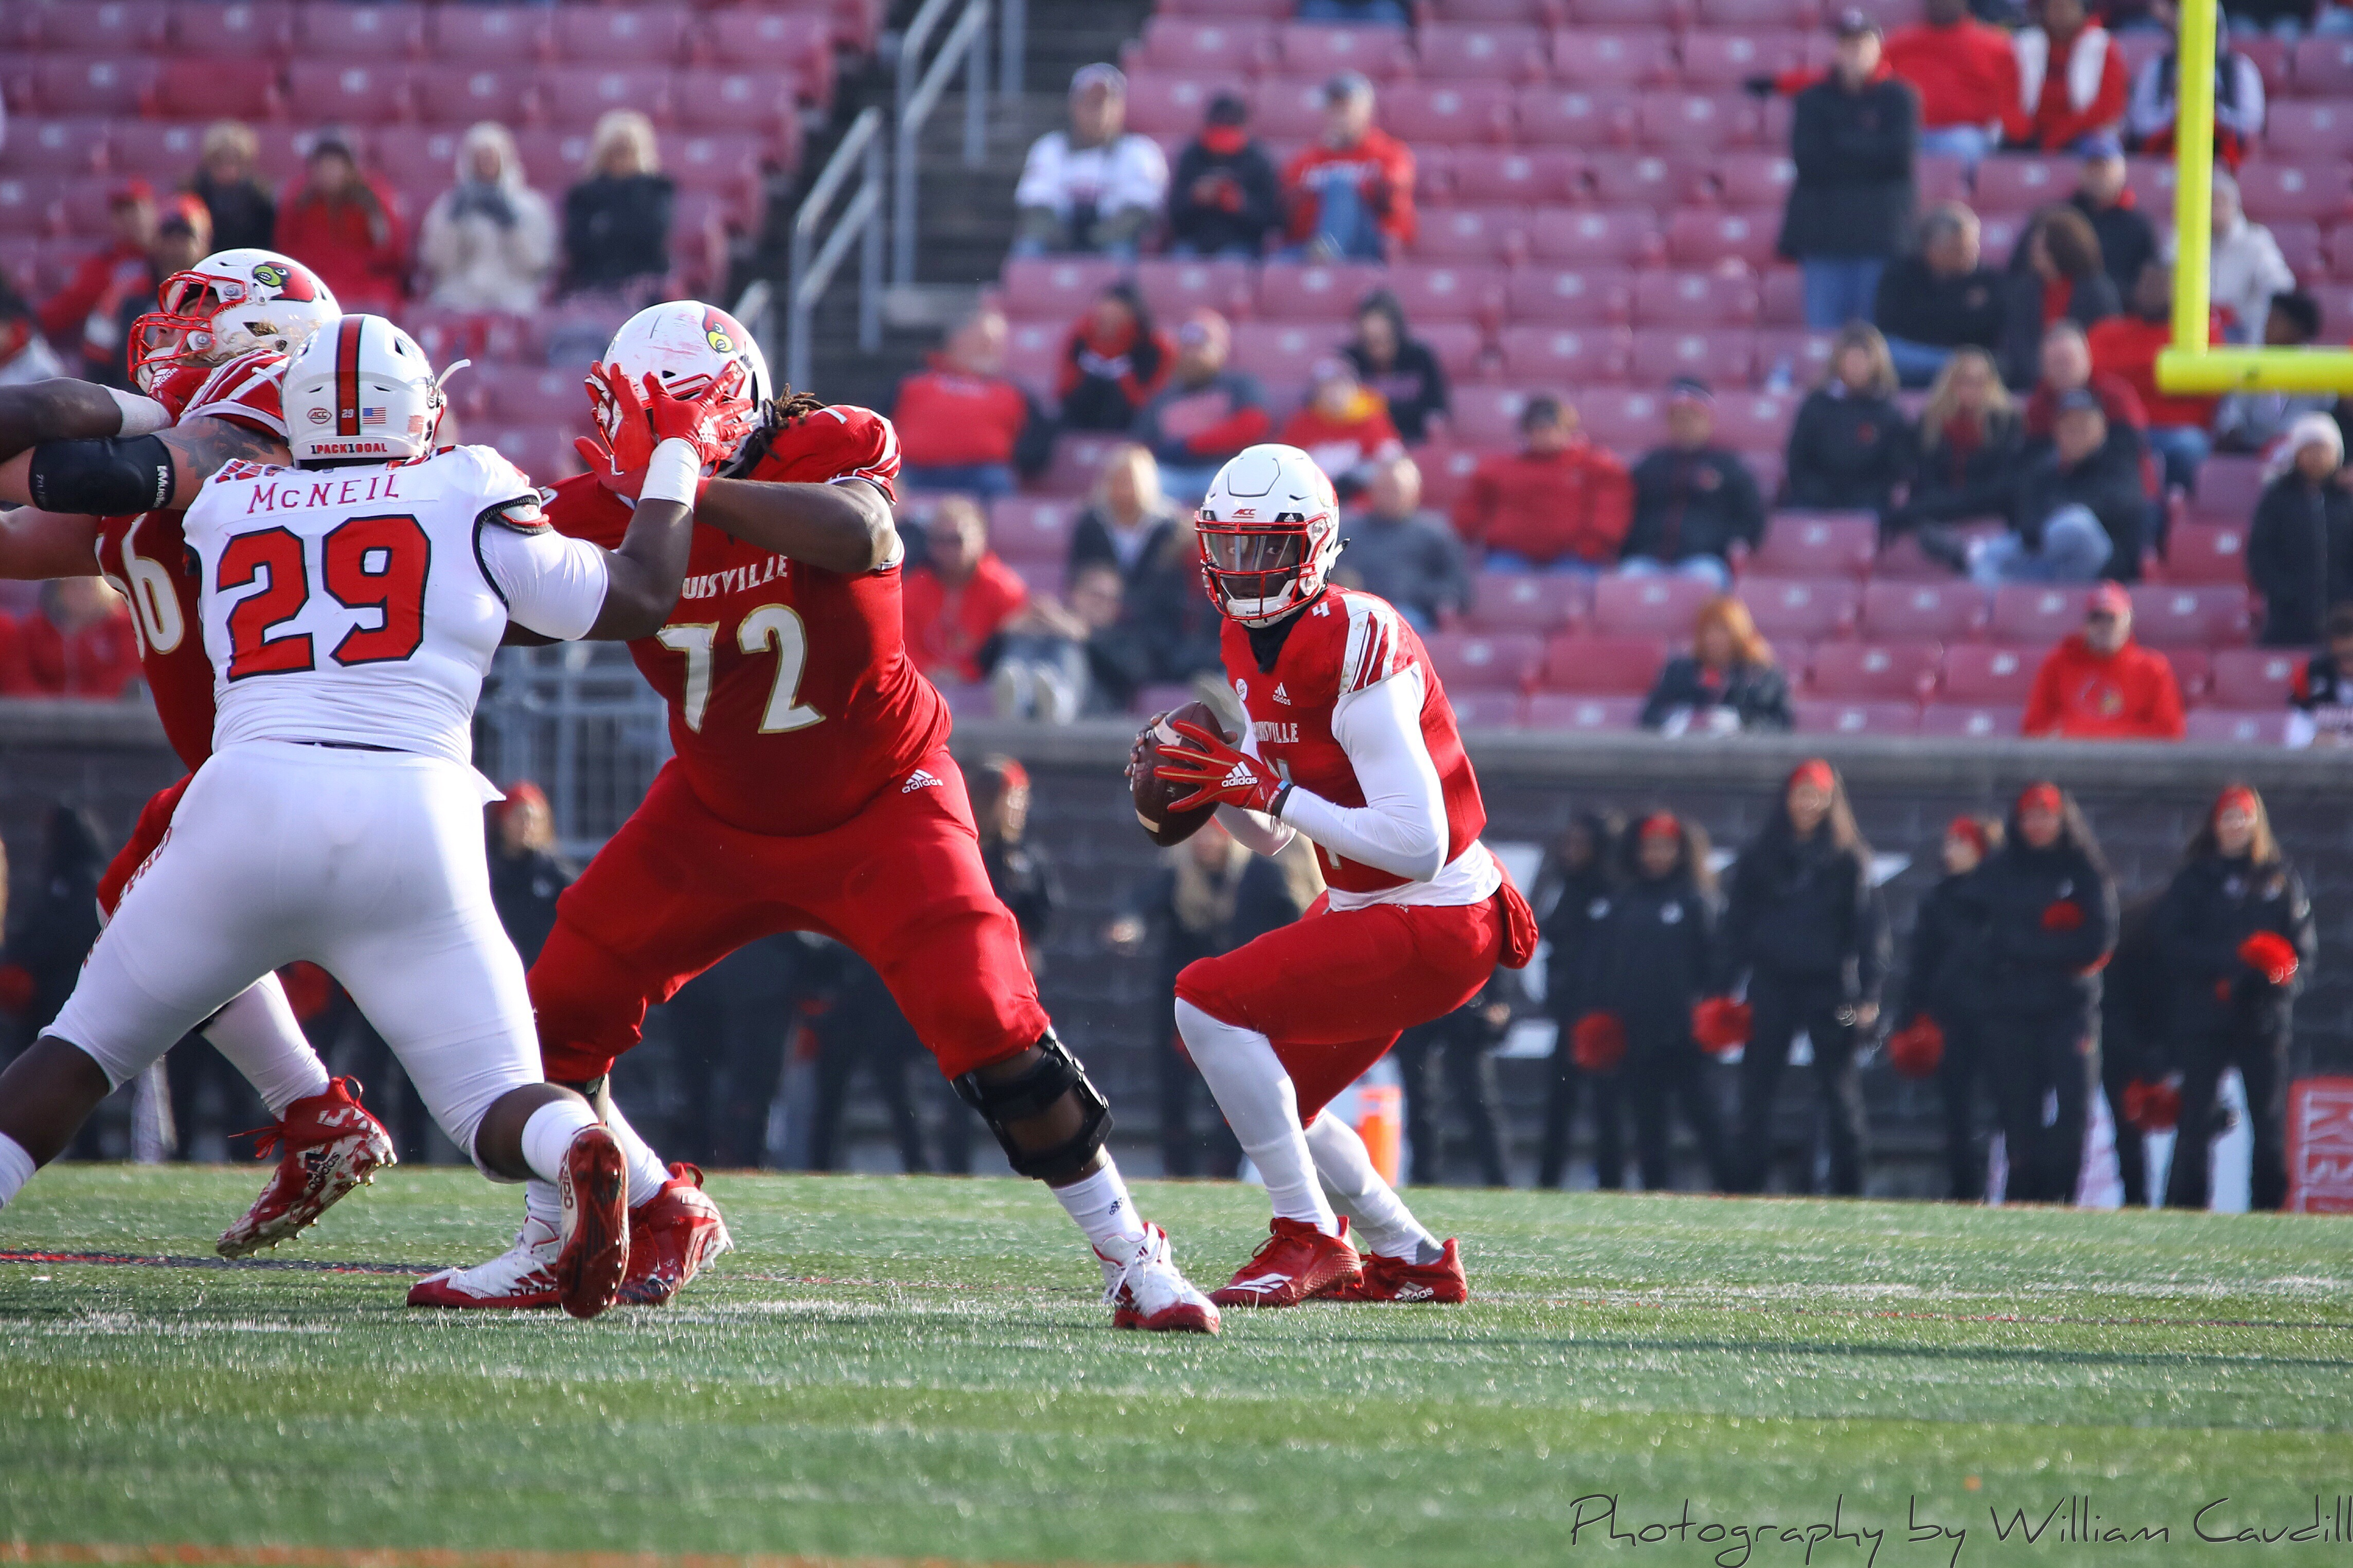 Jawon Pass Reportedly Took A Step Forward at Saturday's Scrimmage